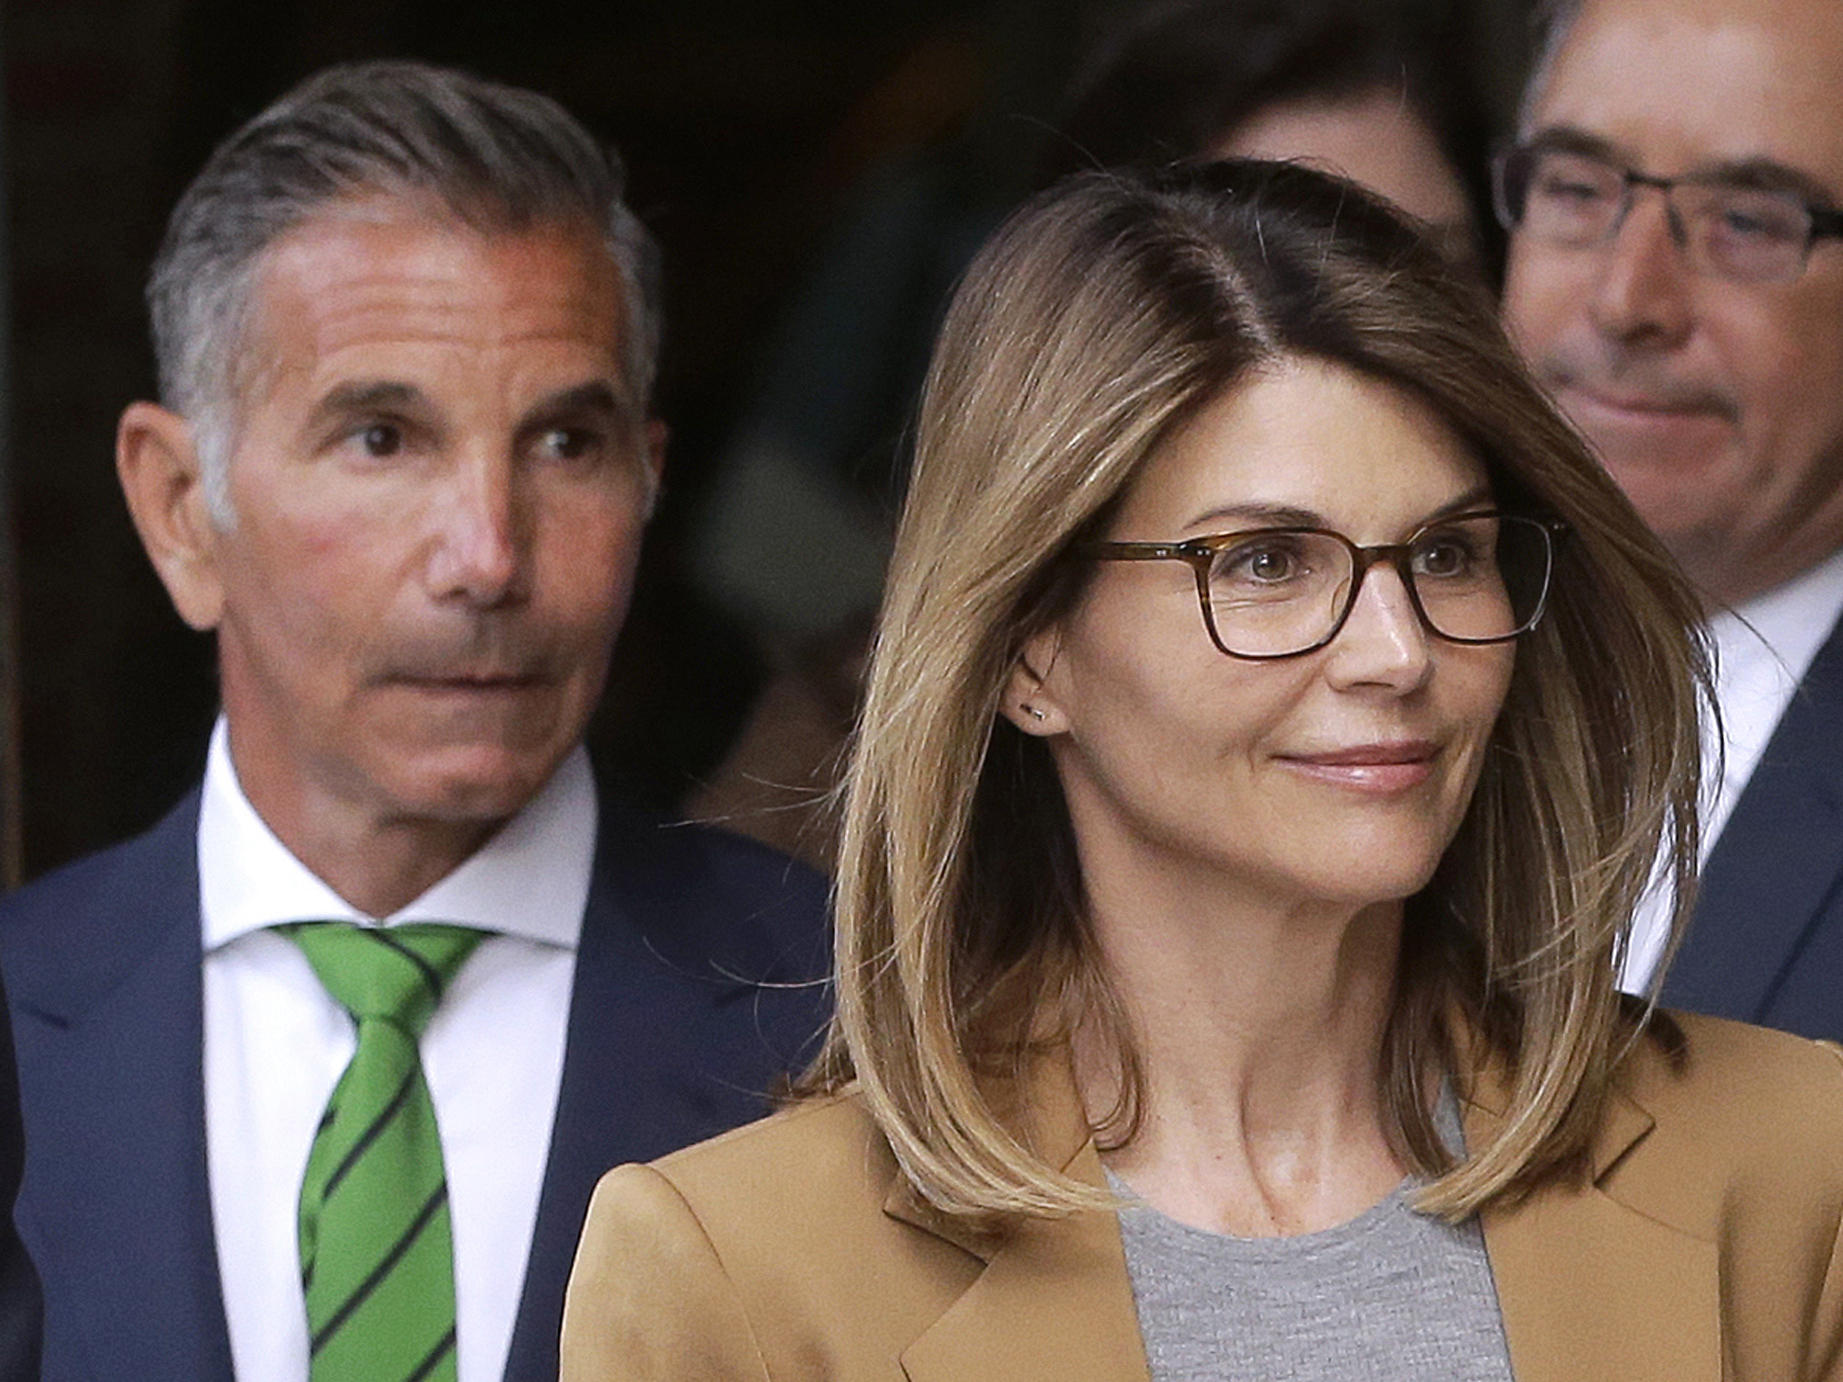 Lori Loughlin, Mossimo Giannulli Plead Not Guilty In College